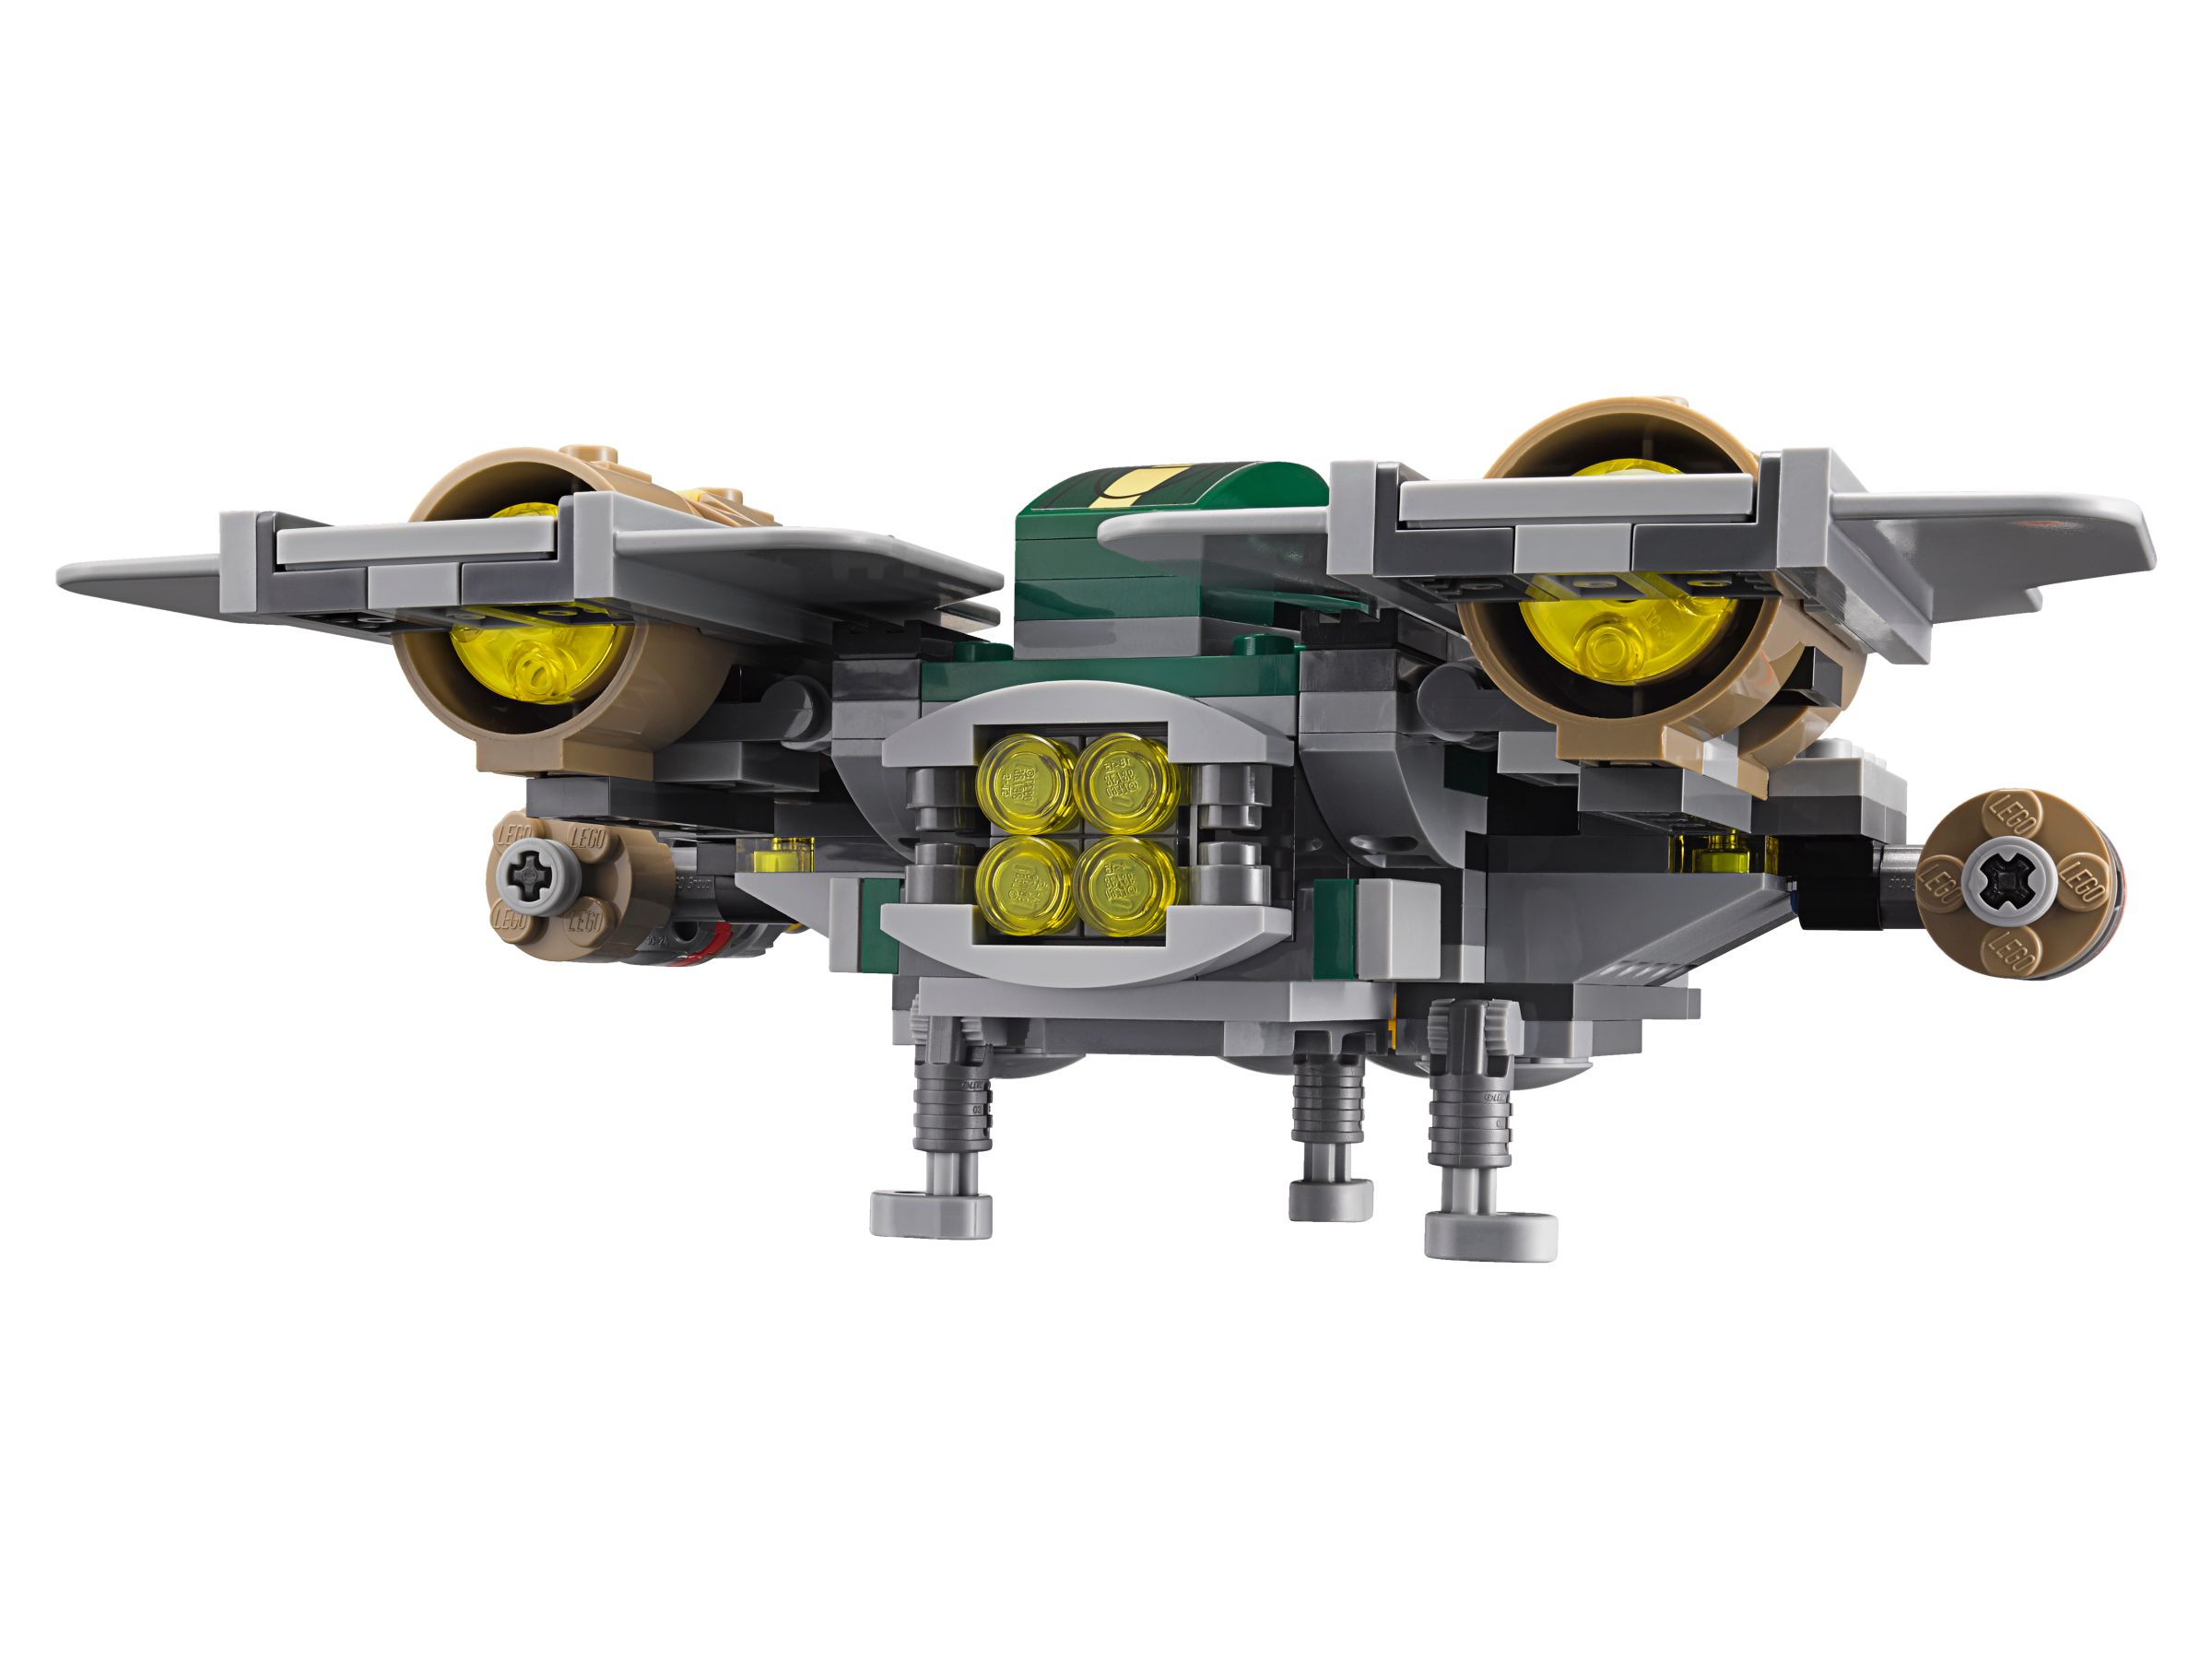 LEGO Star Wars 75150 Vader's TIE Advanced vs. A-Wing Starfighter LEGO_75150_alt7.jpg